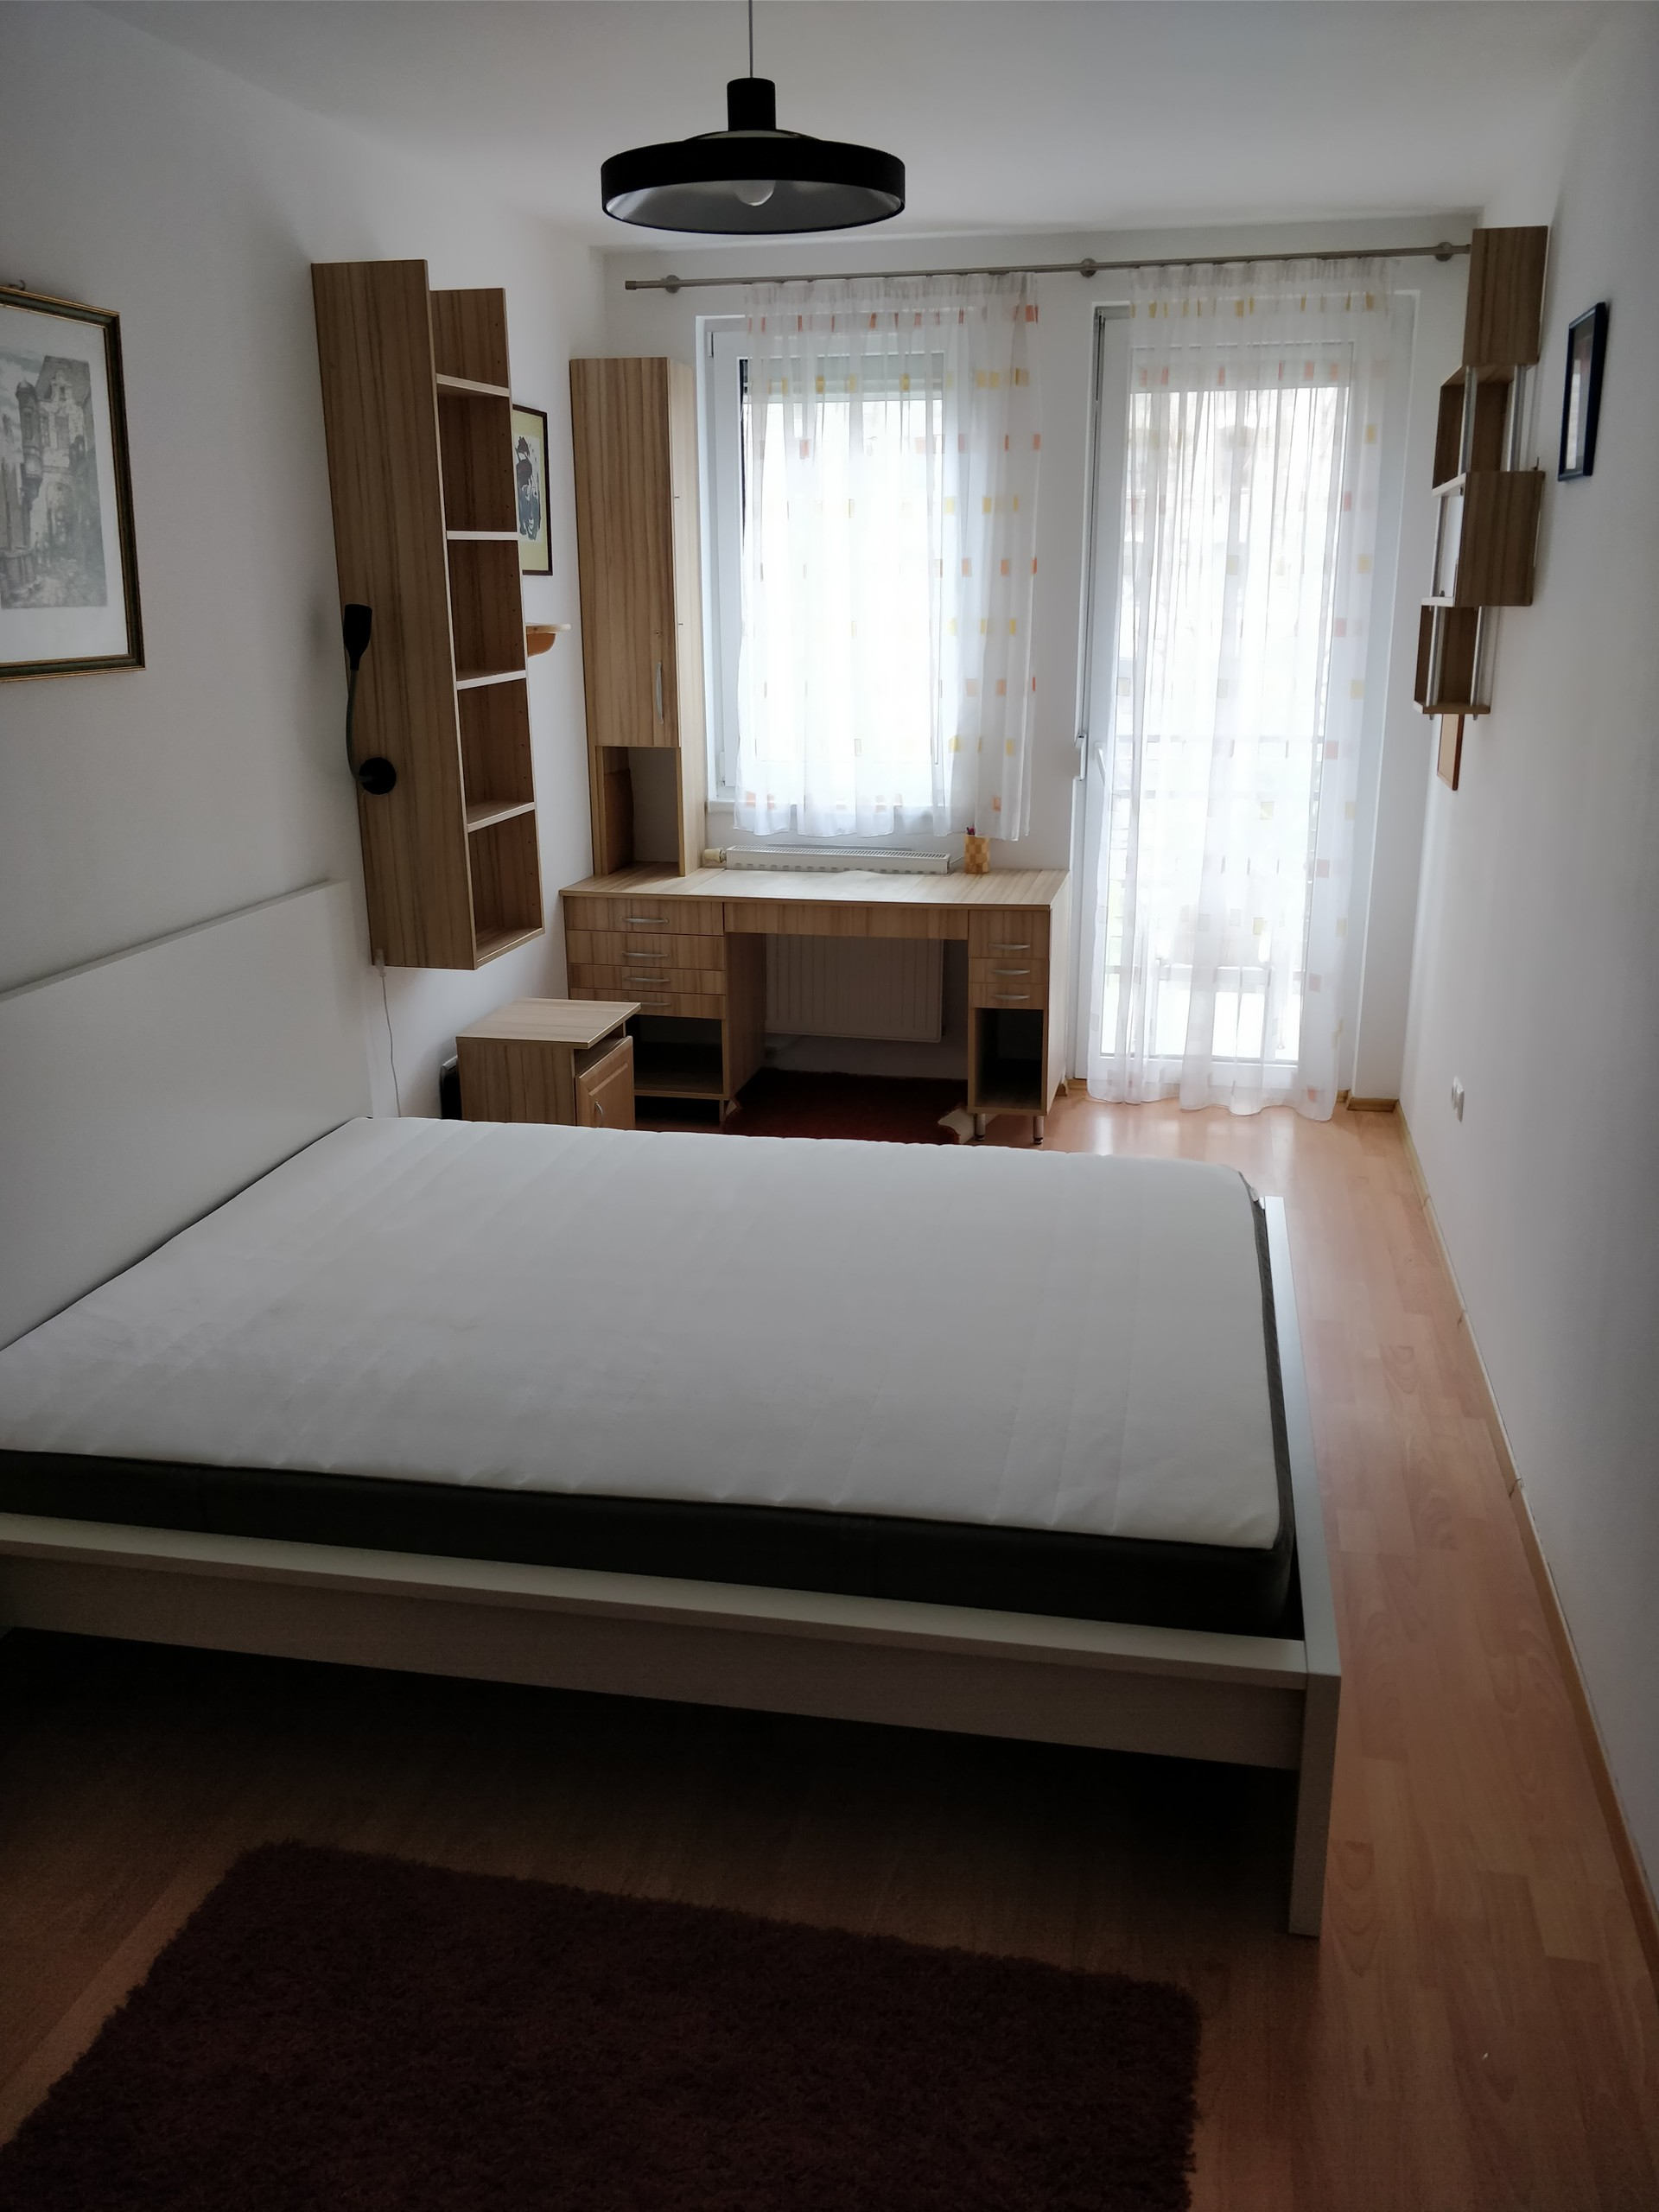 3 rooms + 2 bathrooms + balcony apartment for rent in 9th ...